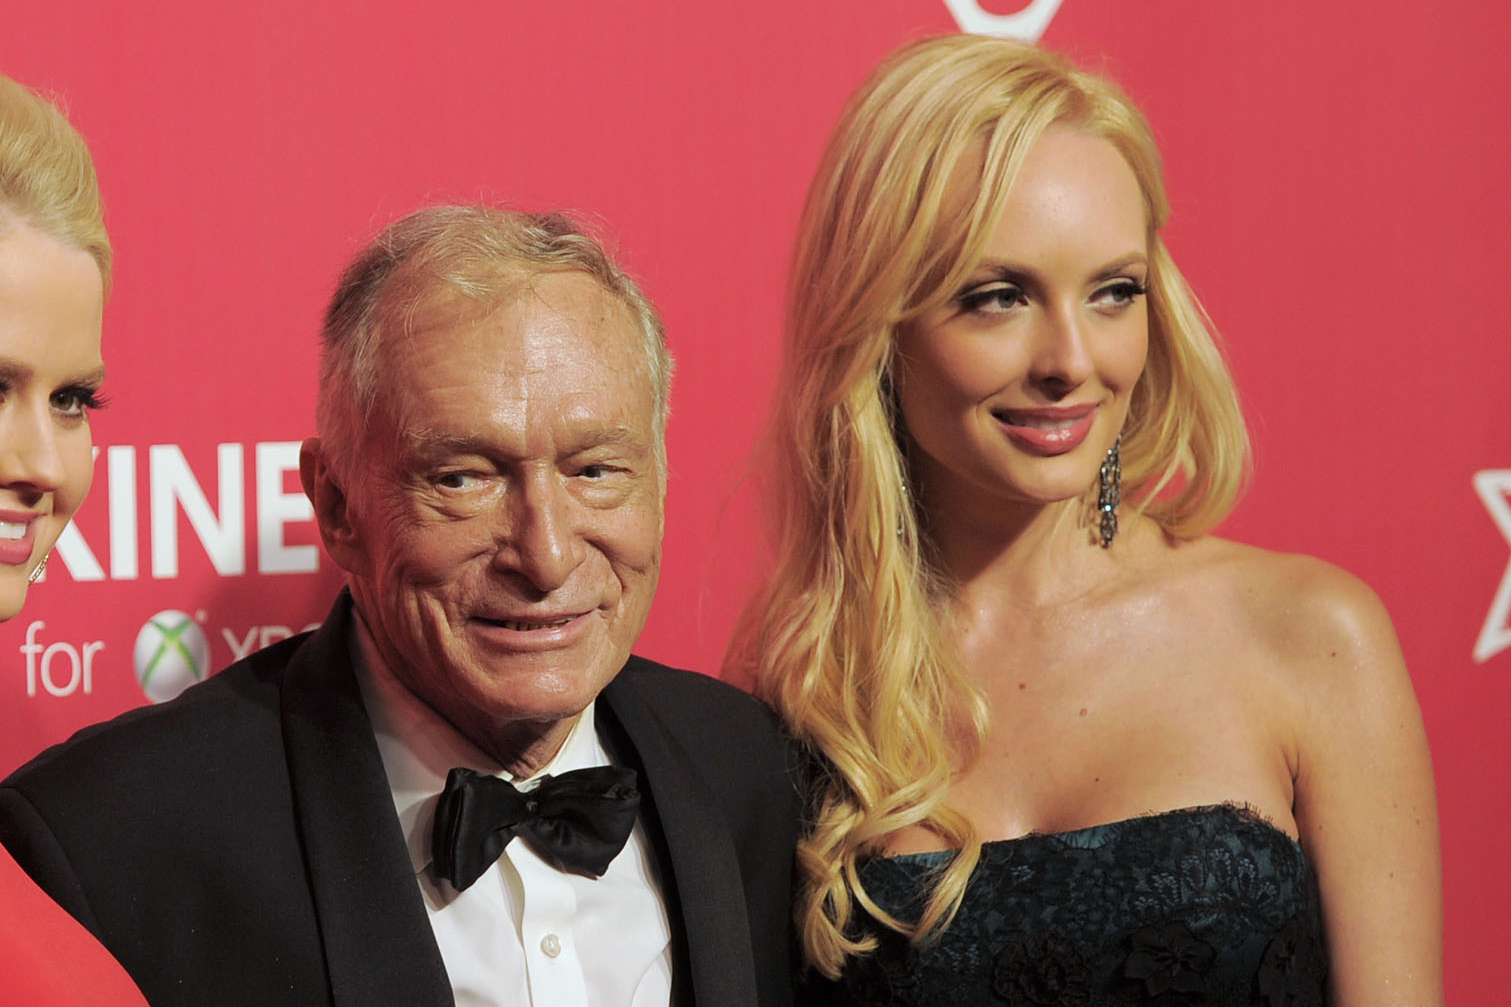 Hugh Hefner, center, Anna Sophia Berglund, left, and Shera Bechard arrive at the MusiCares Person of the Year gala honoring Paul McCartney on Friday, Feb. 10, 2012 in Los Angeles. CHRIS PIZZELLO / AP